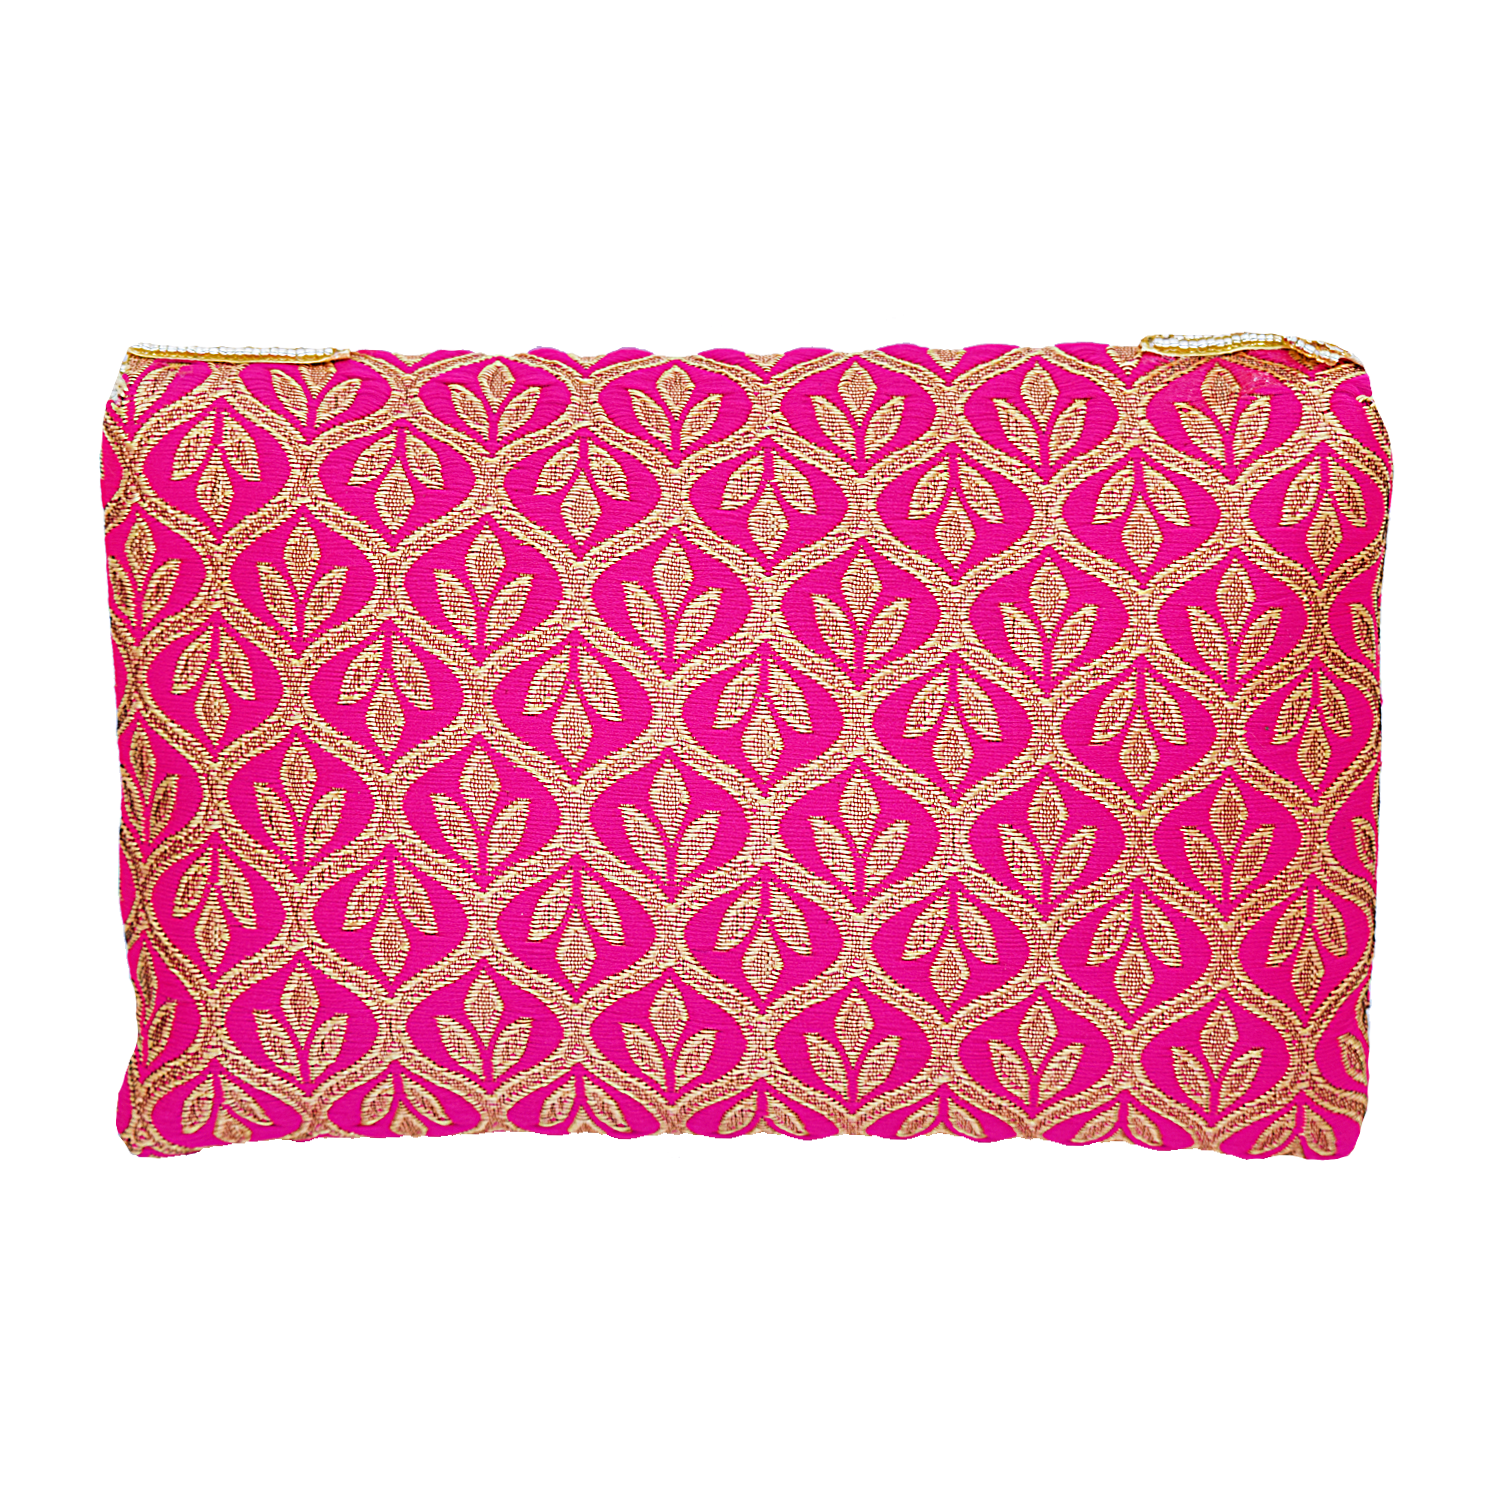 Ethnic Beads and Diamond Studded Silk Clutch (Pink) - Bagaholics Gift